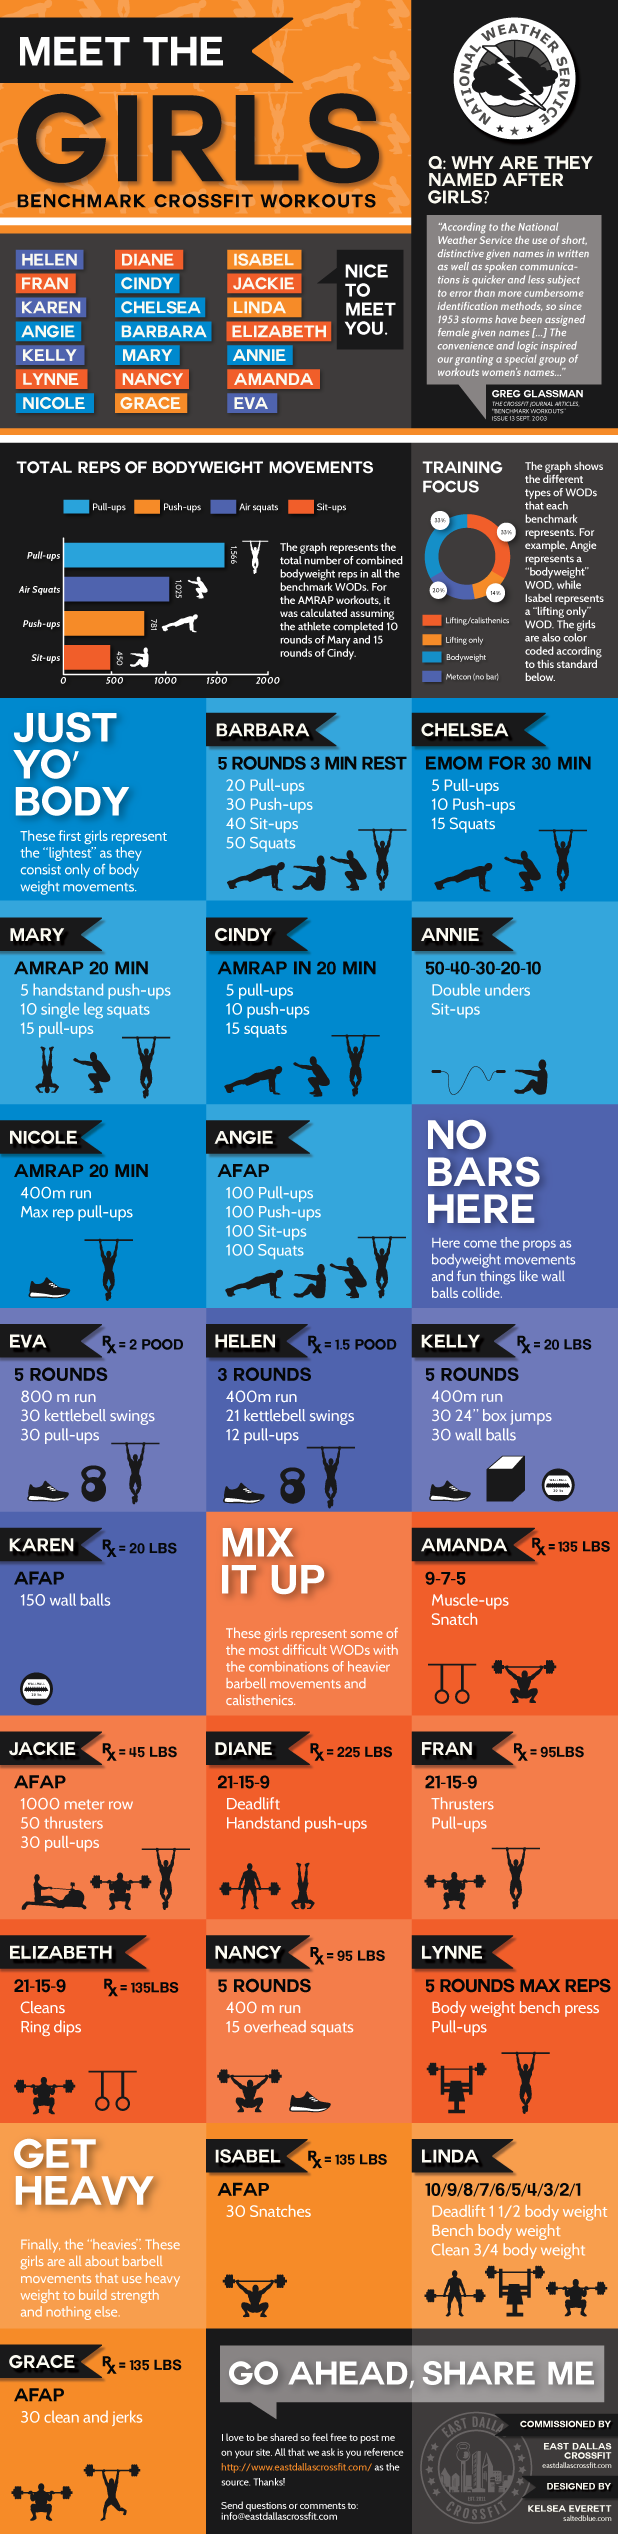 meet-the-girls-crossfit-infographic.png